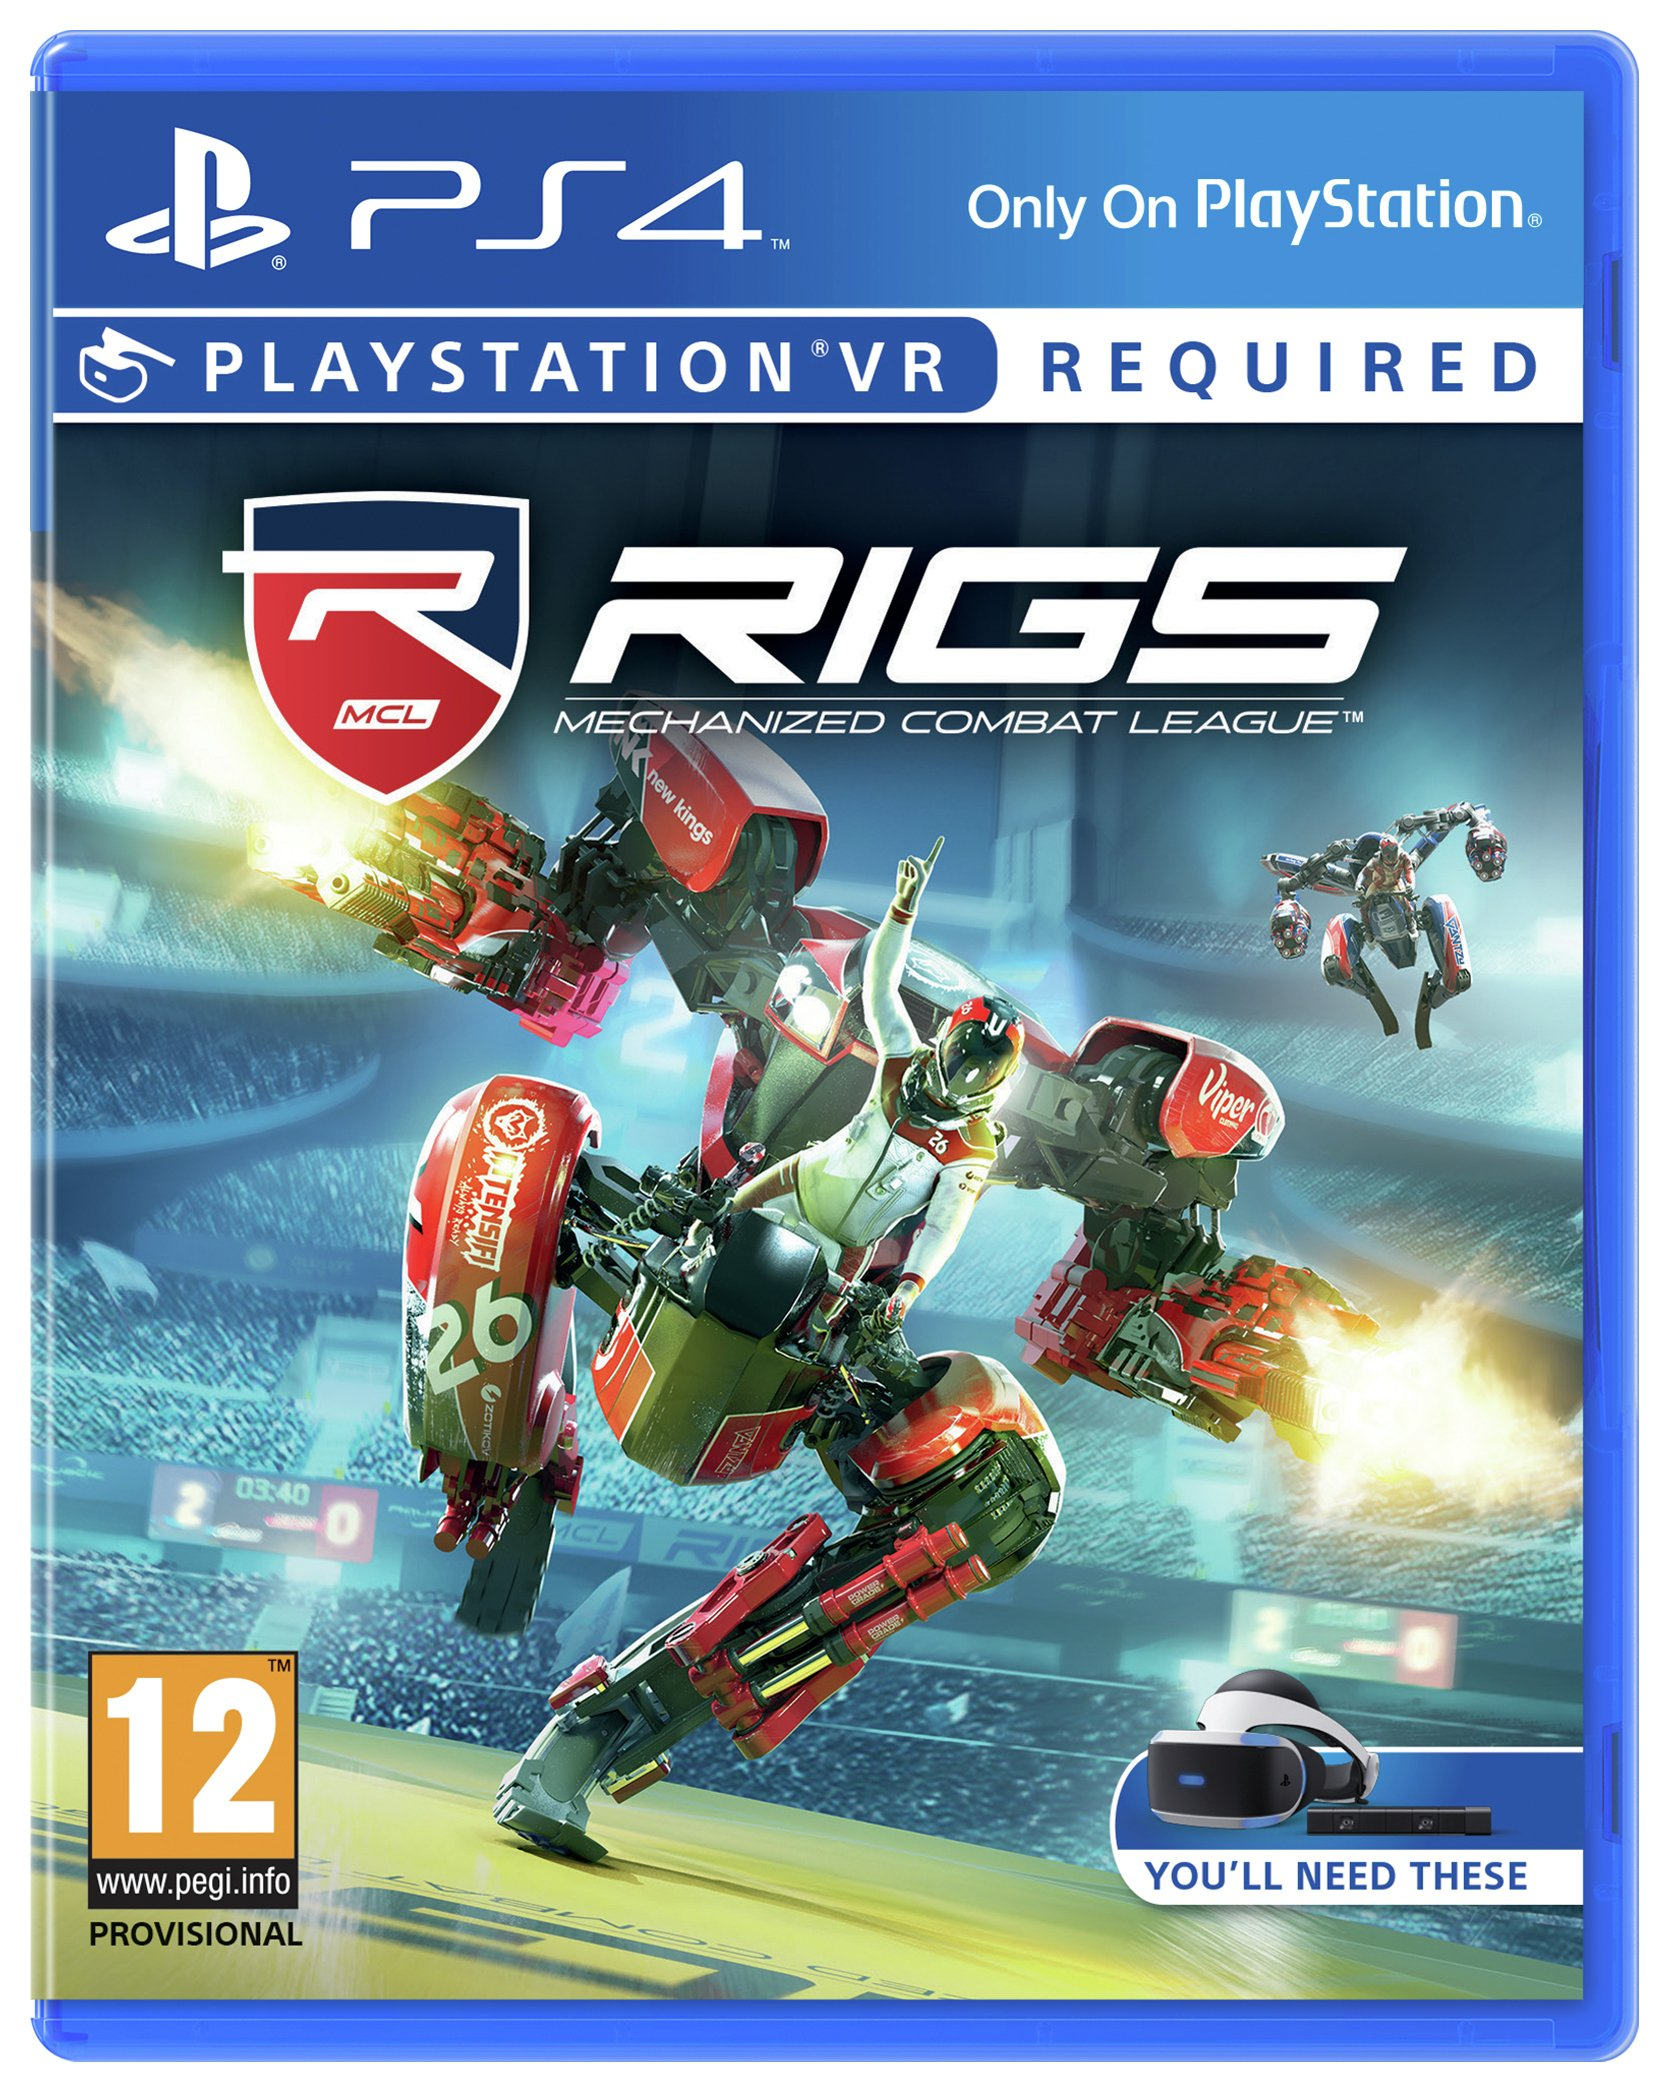 RIGS: Mechanised Combat League PS4 Game.